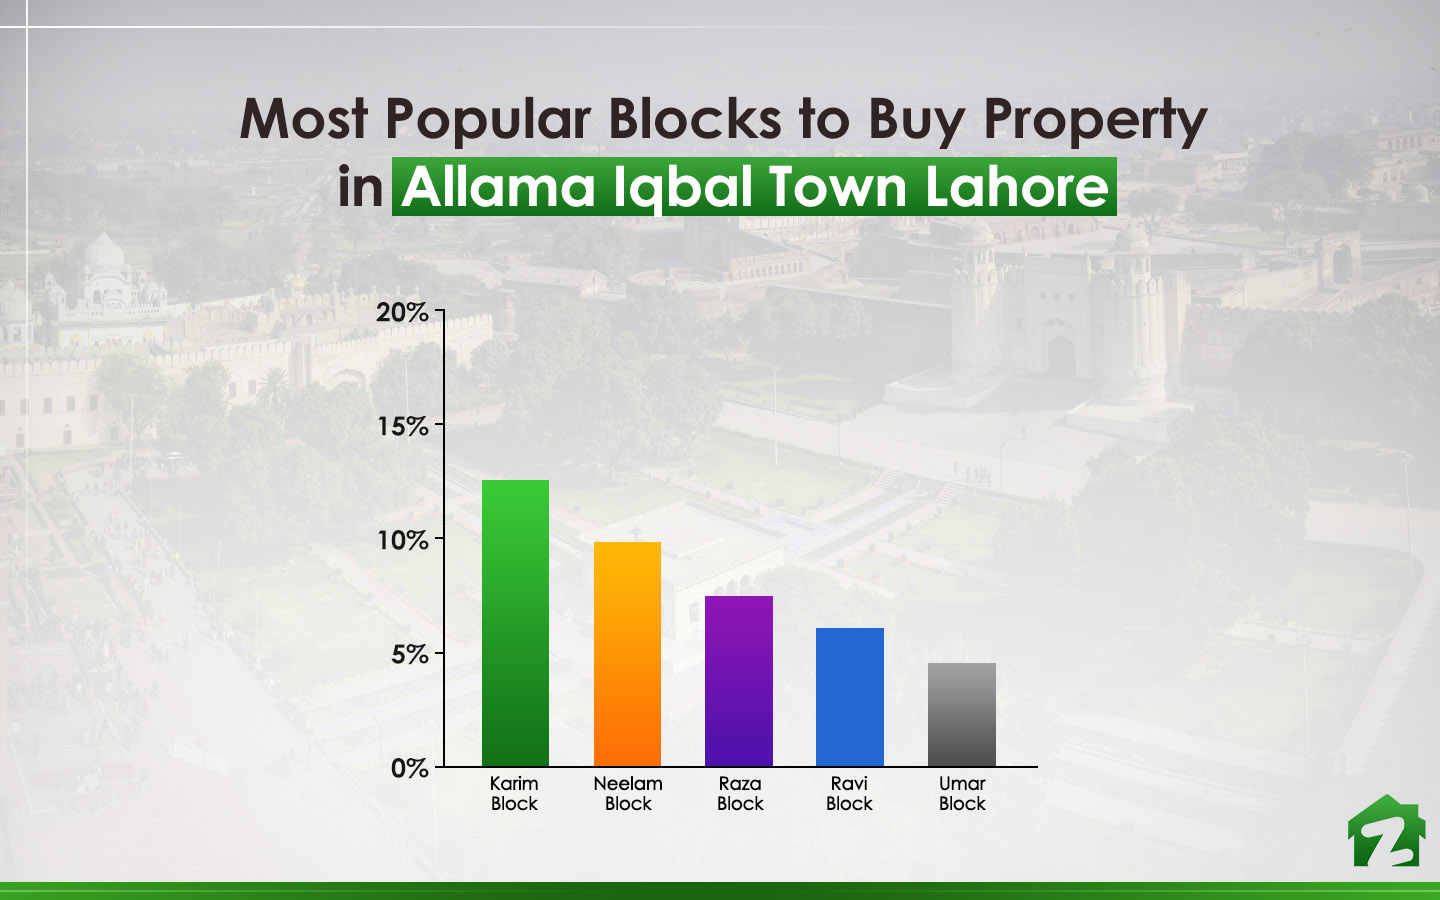 People searched for Karim Block the most when looking for buying properties in the town